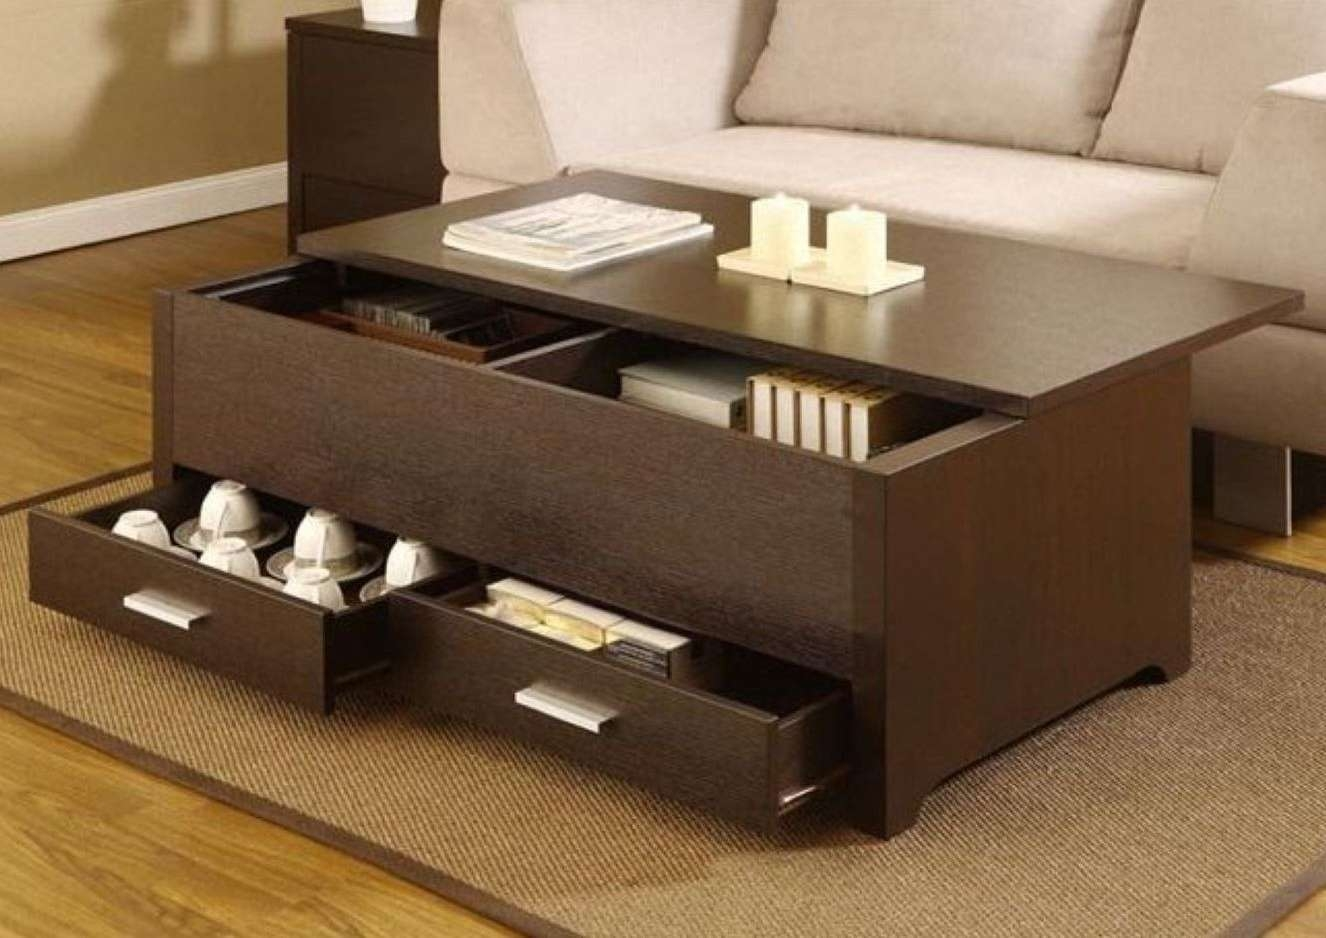 Fashionable Black Coffee Tables With Storage With Regard To Coffee Tables : Good Black Coffee Tables With Storage About (View 12 of 20)